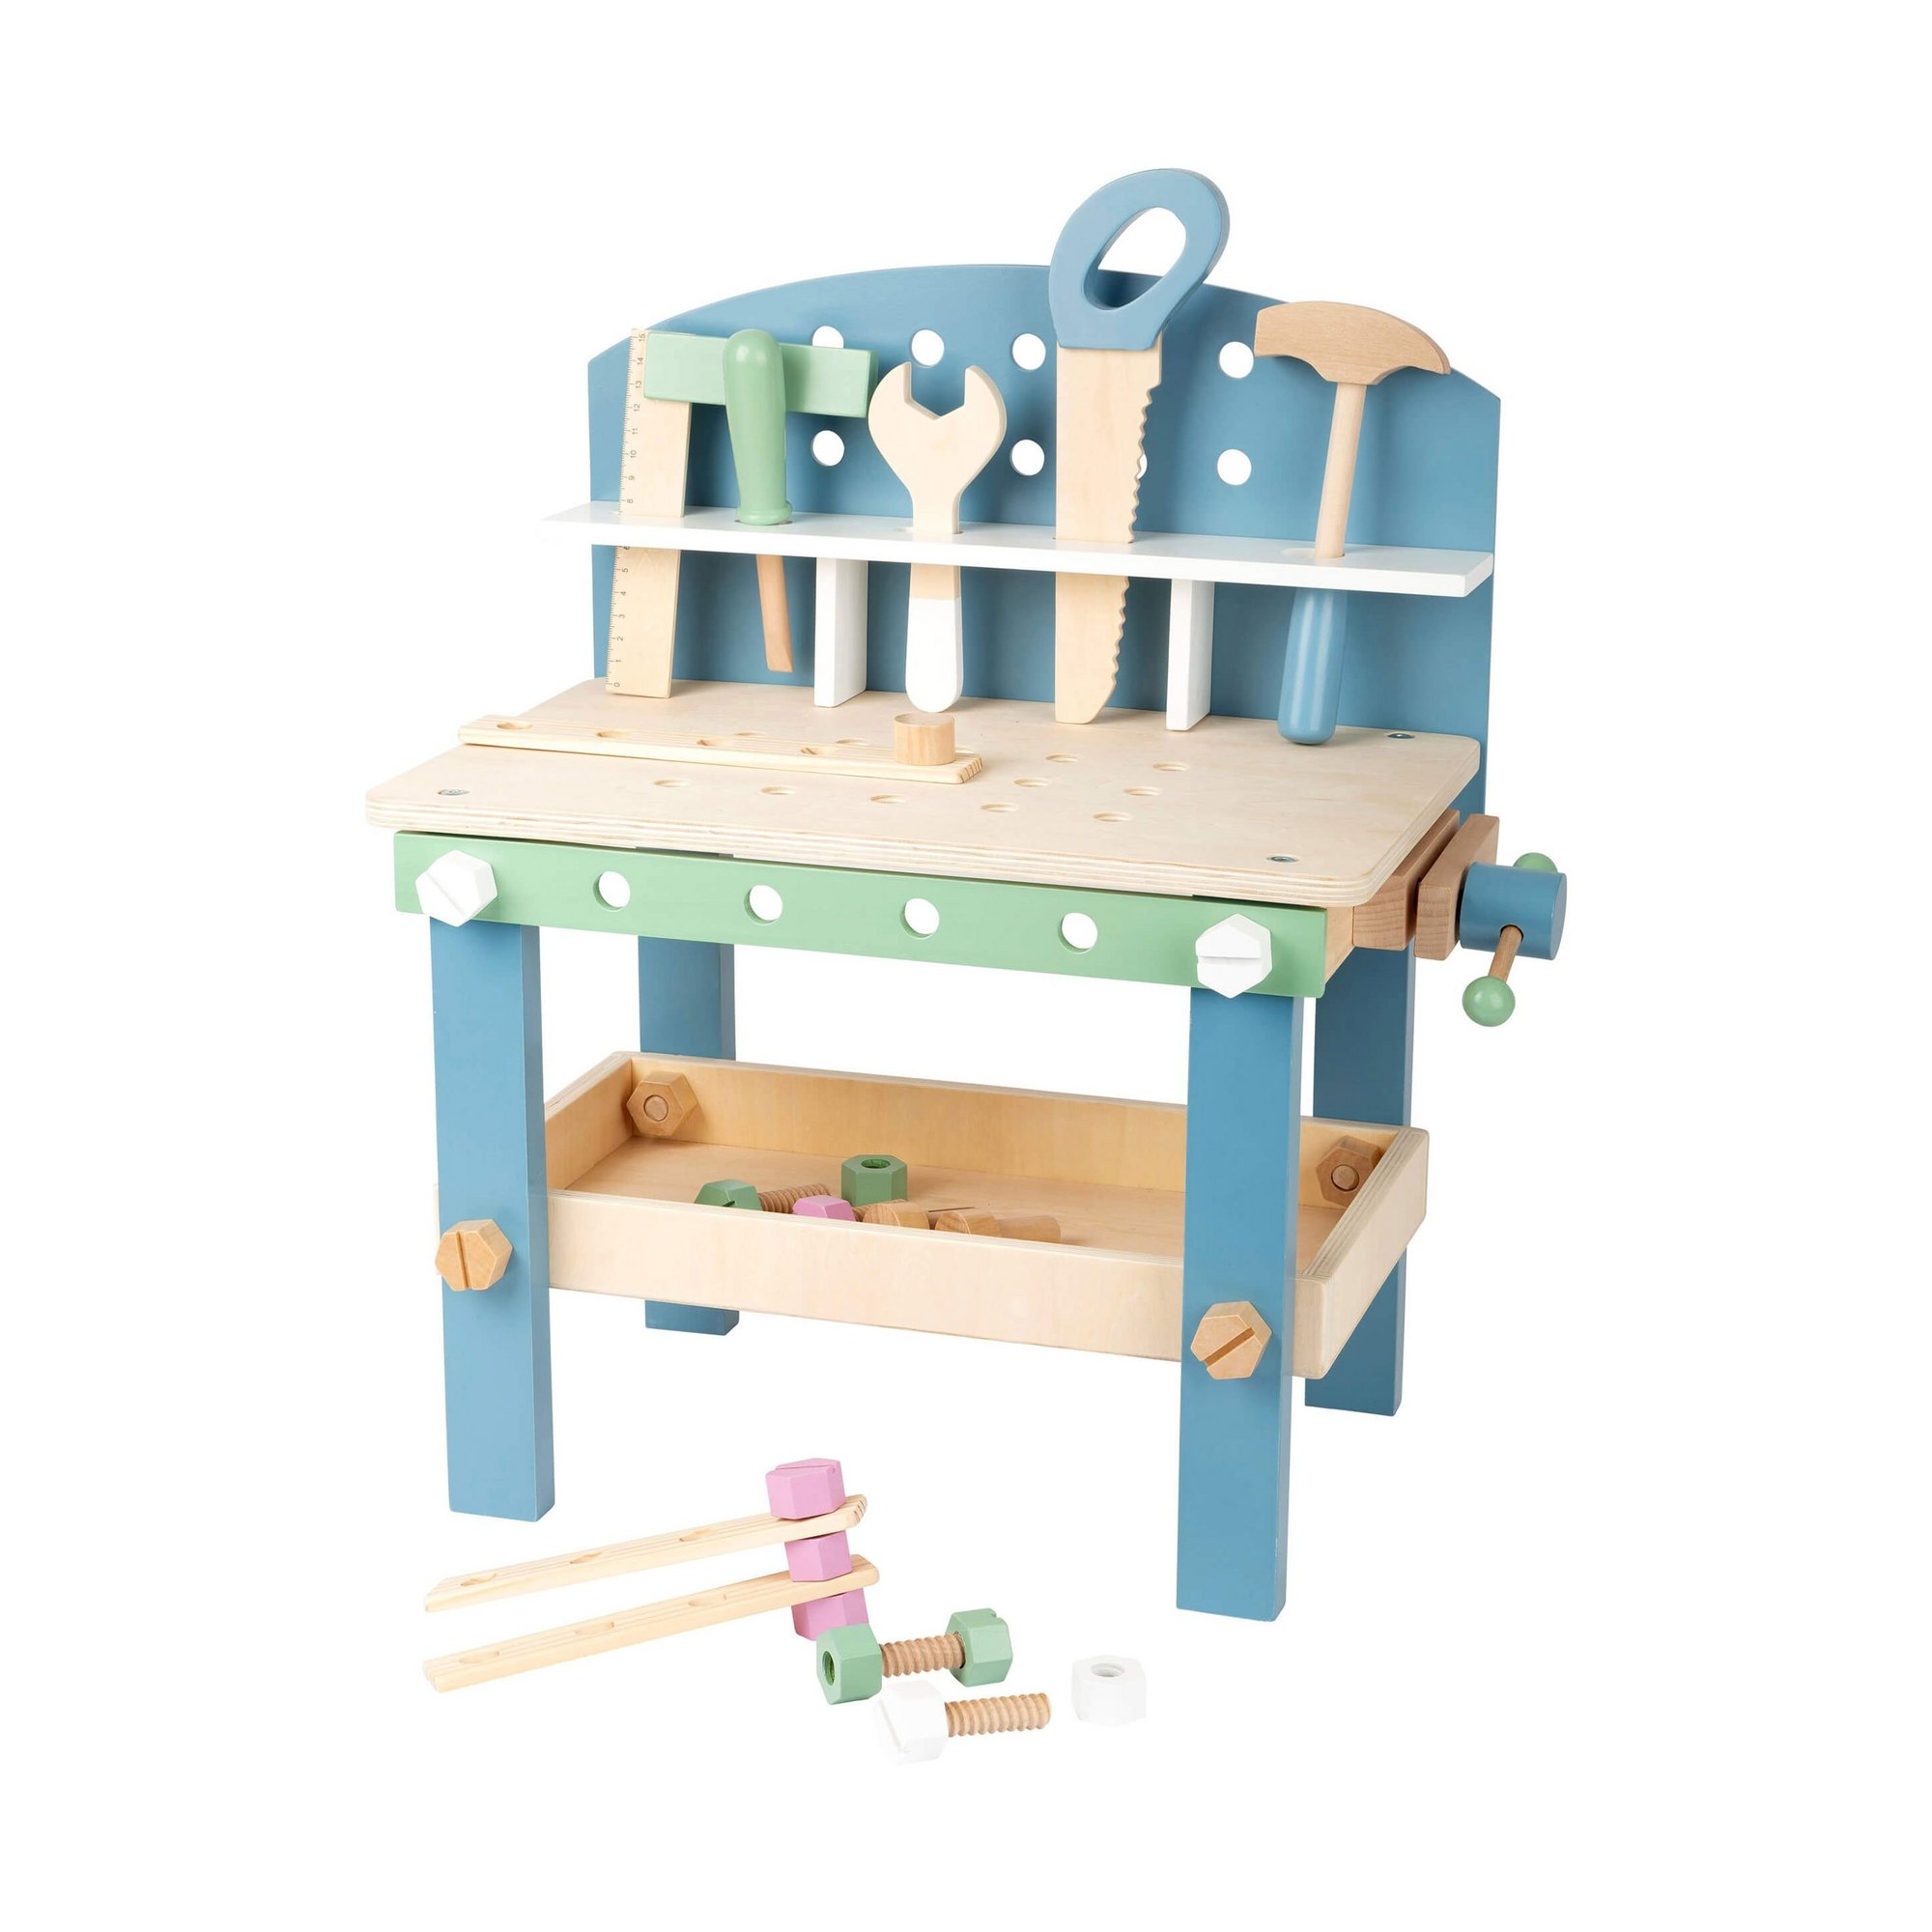 Image of LEGLER Small Foot Childrens Nordic Workbench Compact Play Set